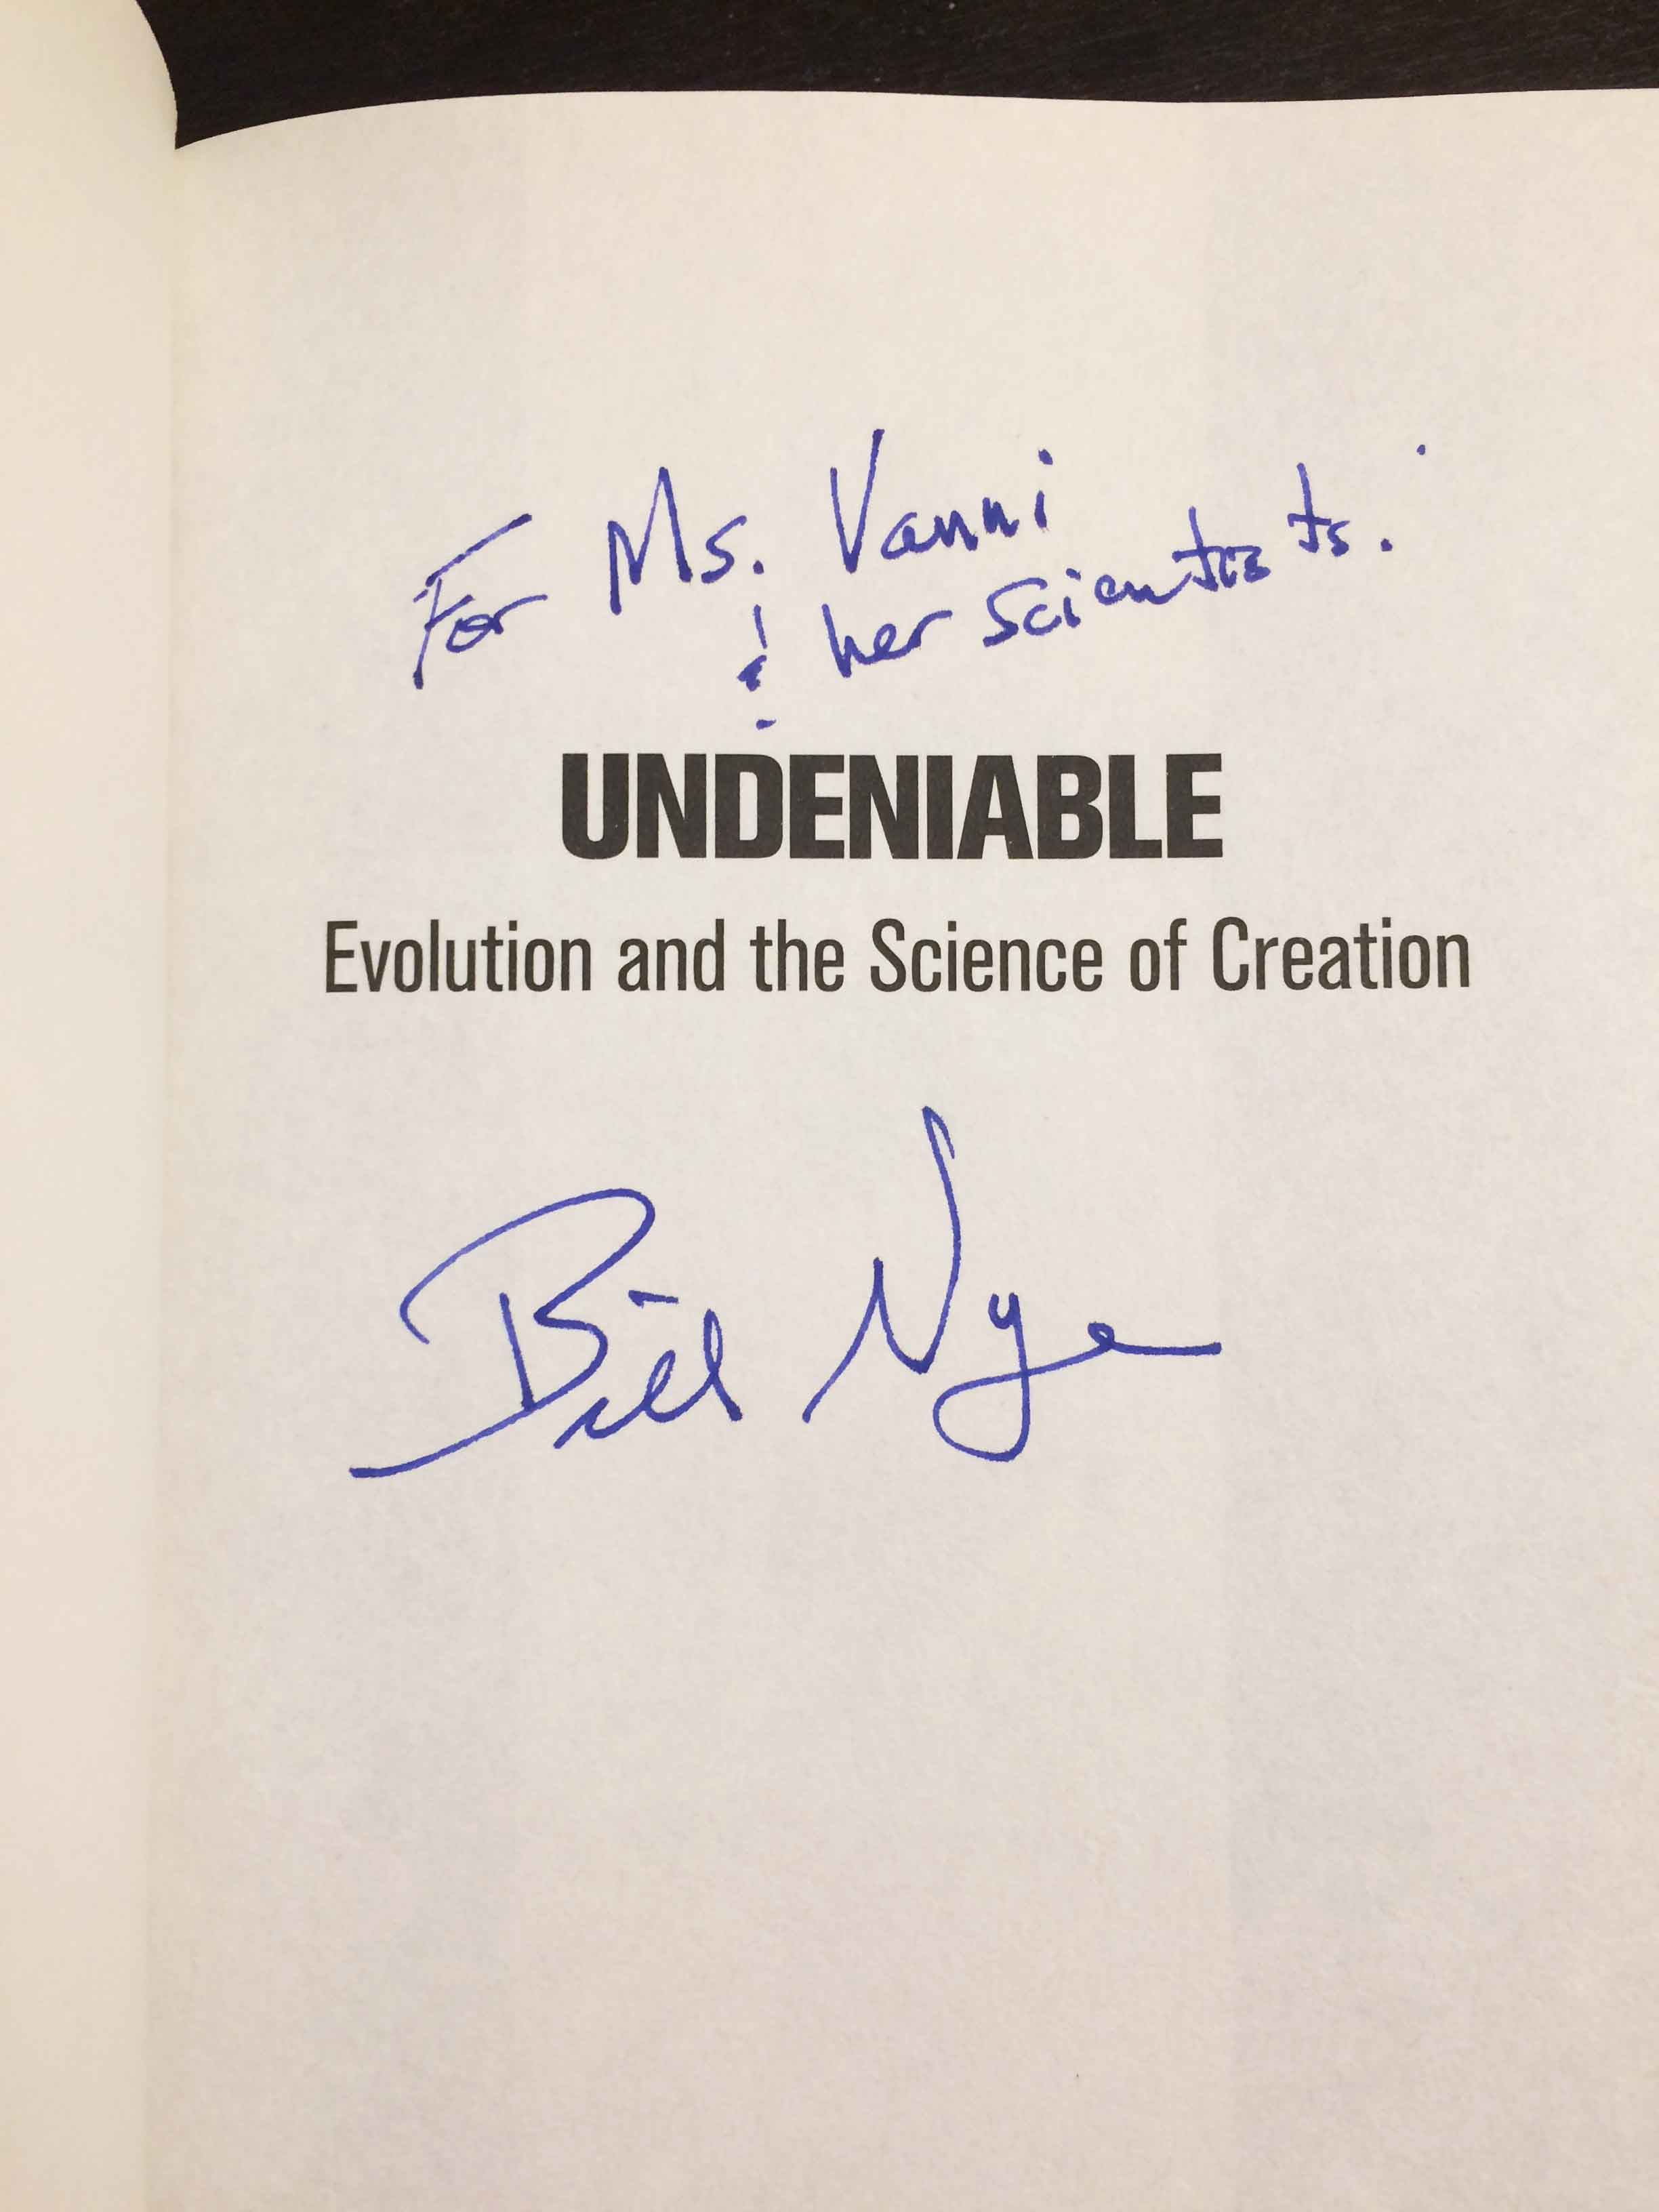 Bill Nye signs his book for Megan Vanni, mentioning her students at SMCHS.